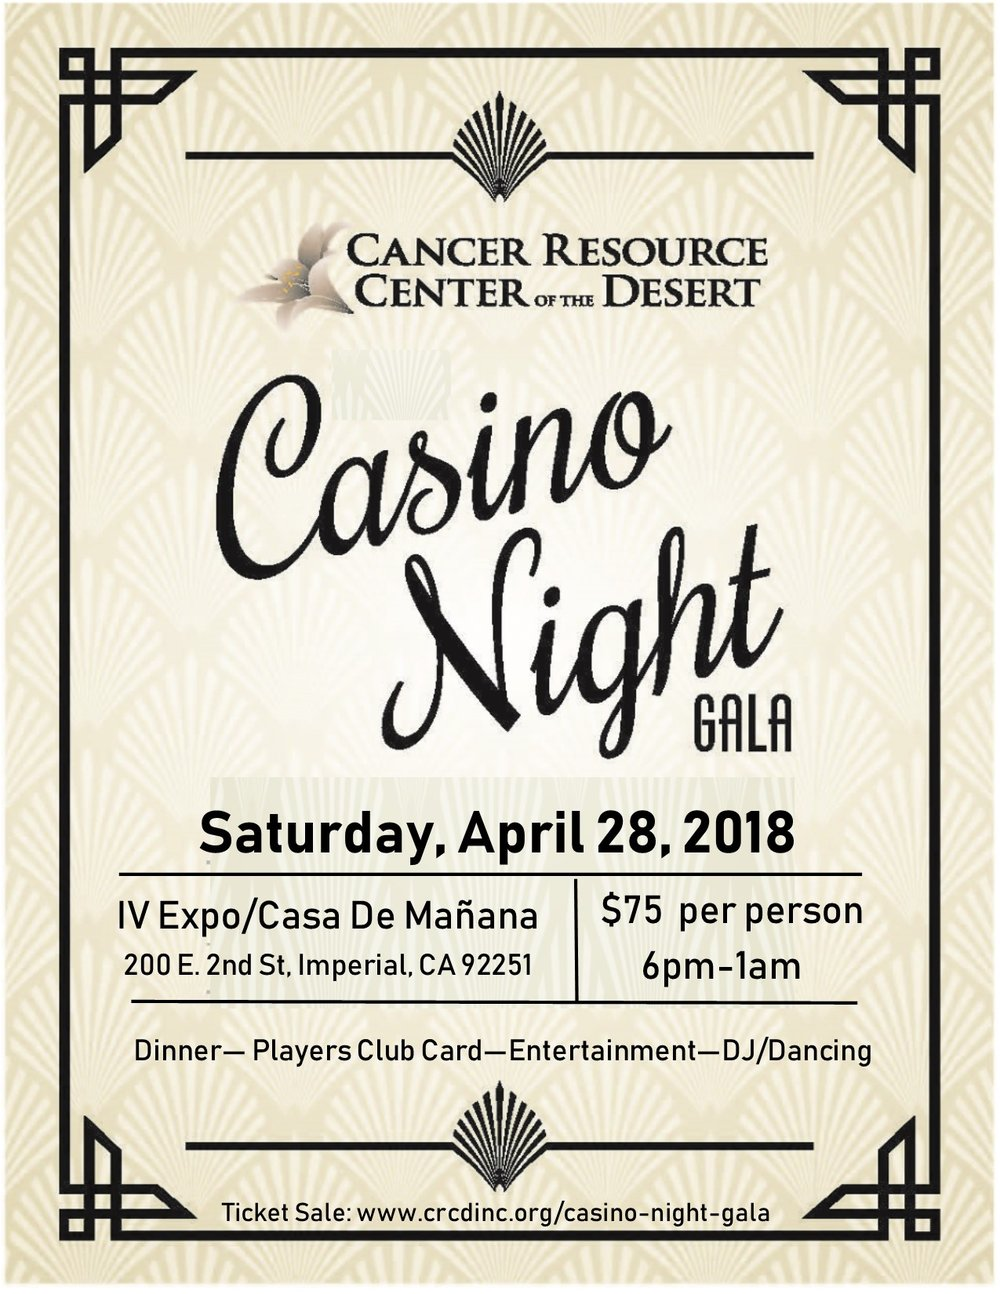 Casino Night Gala Flyer.jpg